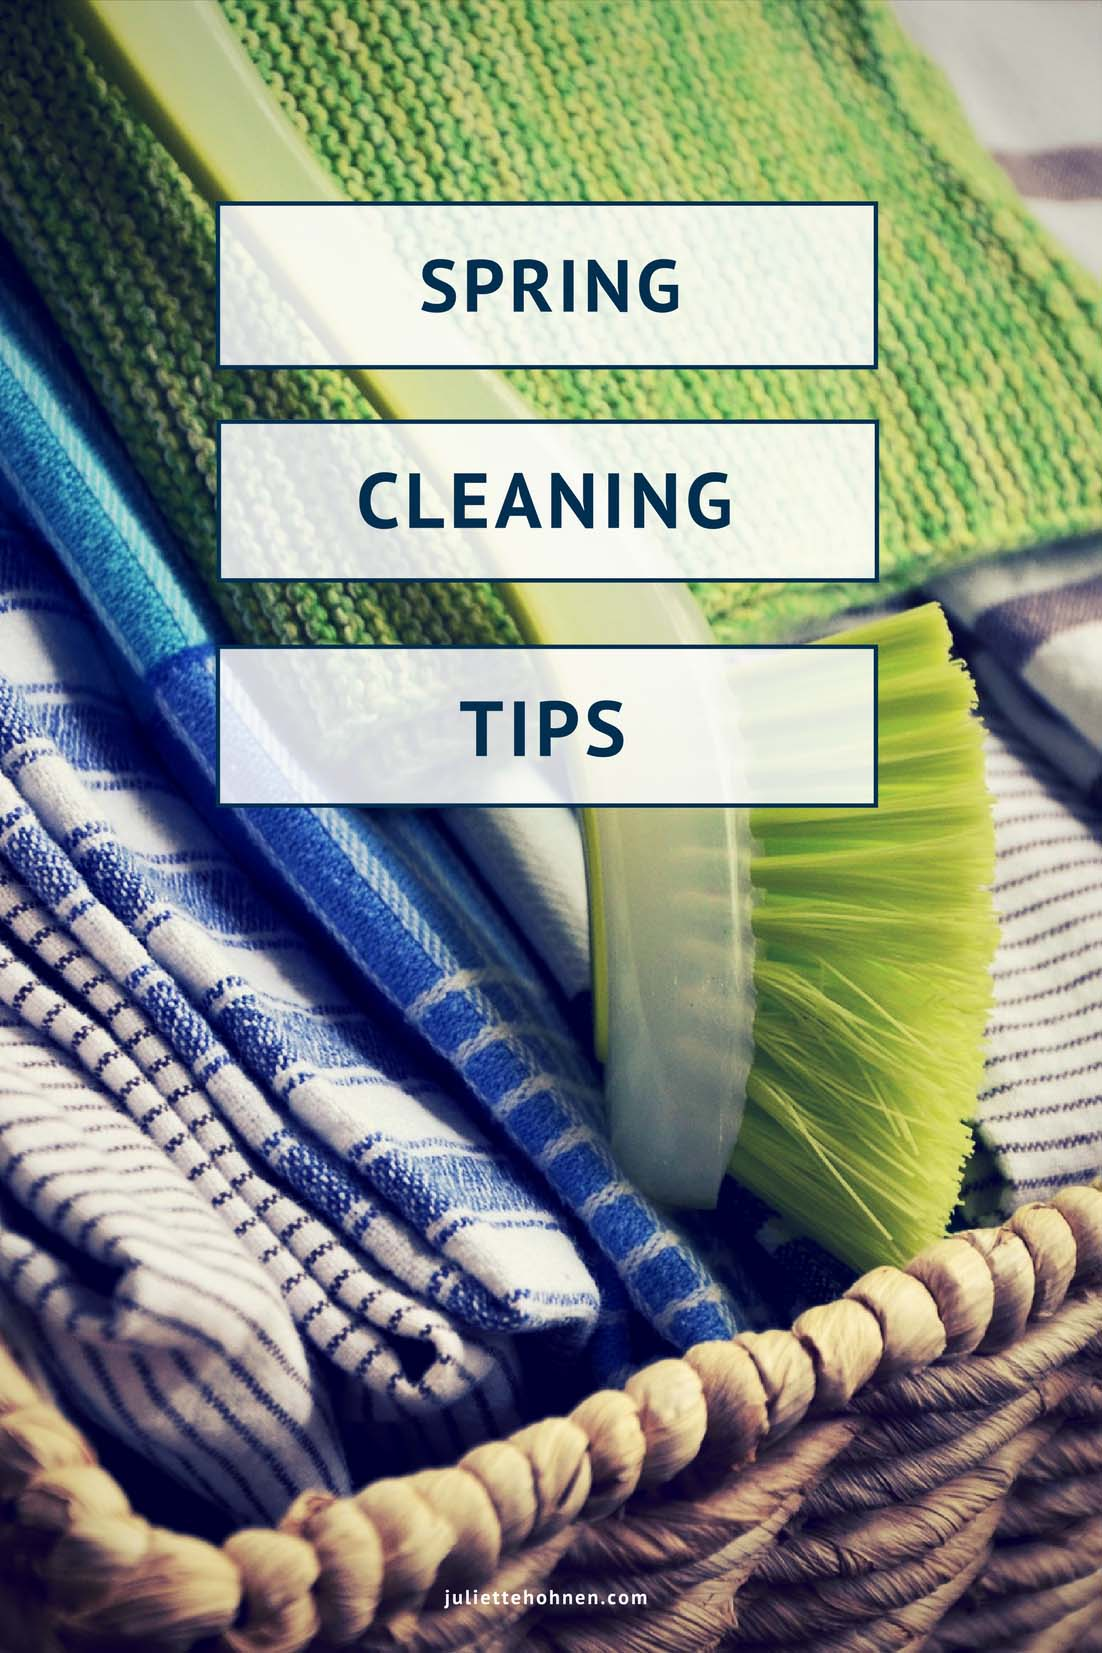 Spring Cleaning Tips – 10 Things to Tackle This Year